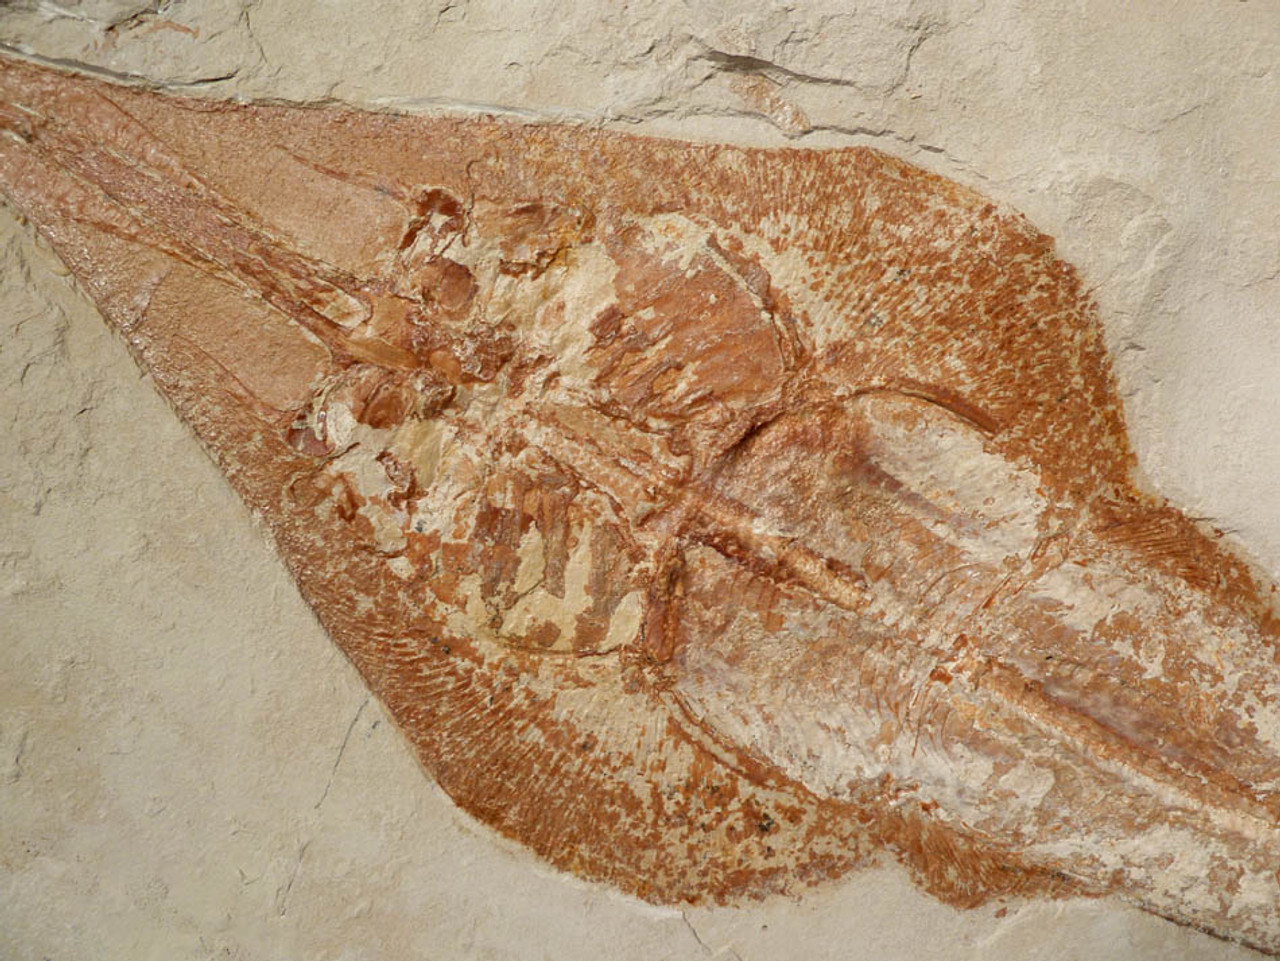 SHX028 - MUSEUM GRADE 24 INCH CRETACEOUS GUITARFISH RAY FOSSIL RHINOBATOS FROM LEBANON WITH ULTRA-RARE PRESERVATION